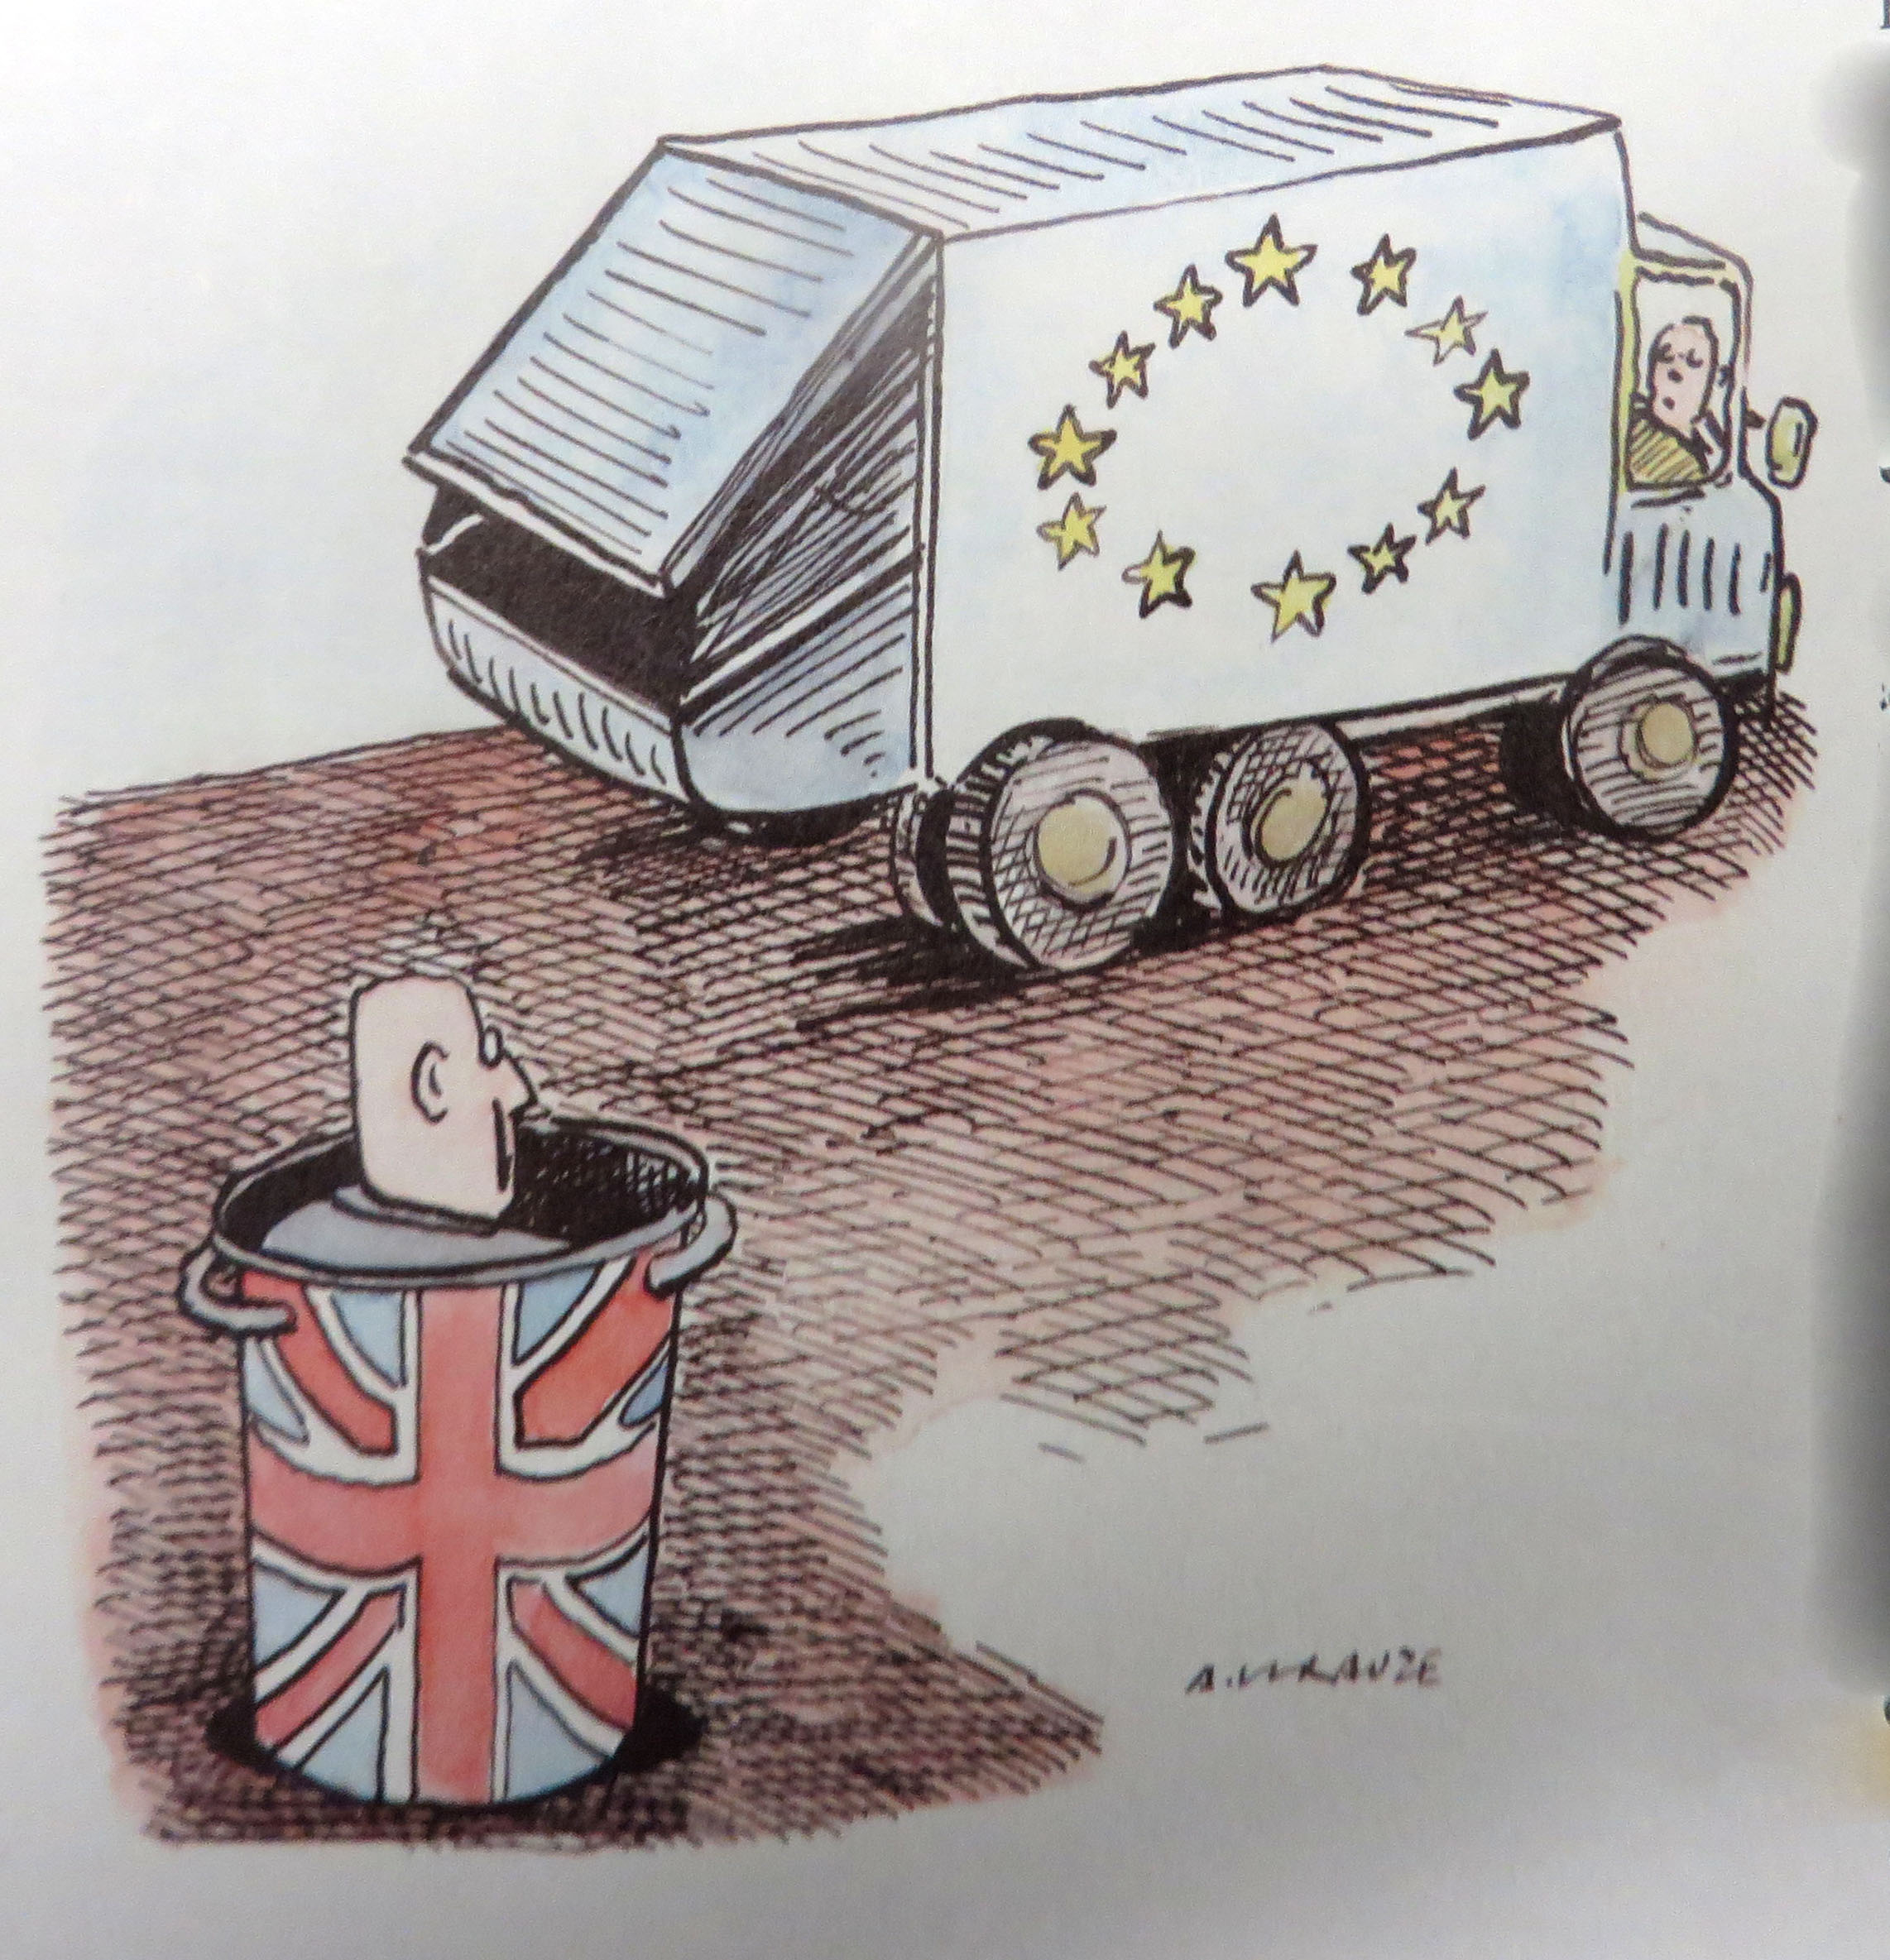 """Brexit cartoon"", by Gwydion M. Williams. CC-BY-2.0 via Flickr."